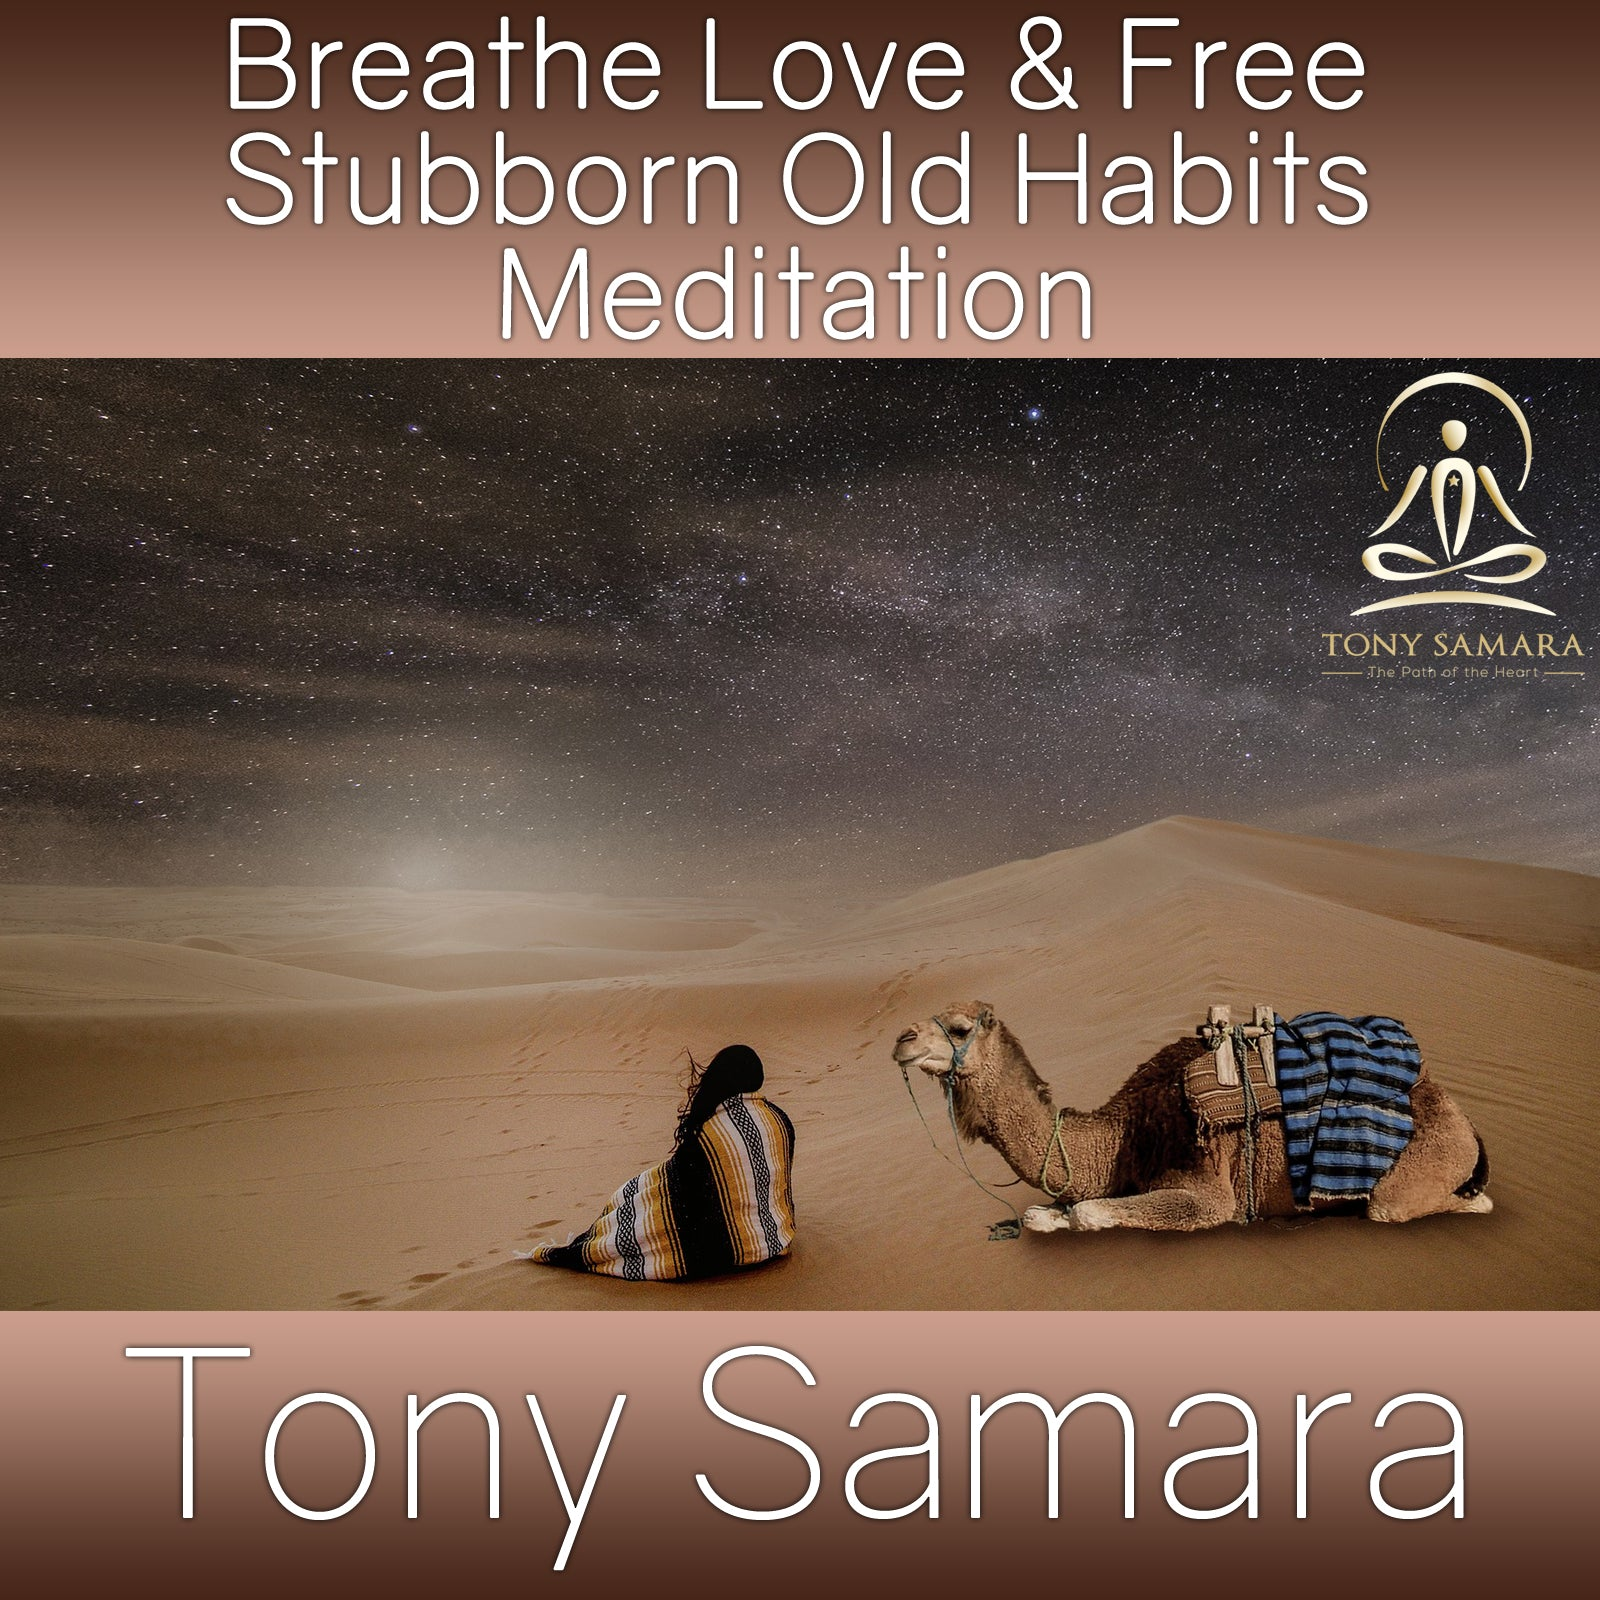 Breathe Love & Free Stubborn Old Habits Meditation (MP3 Audio Download) - Tony Samara Meditation